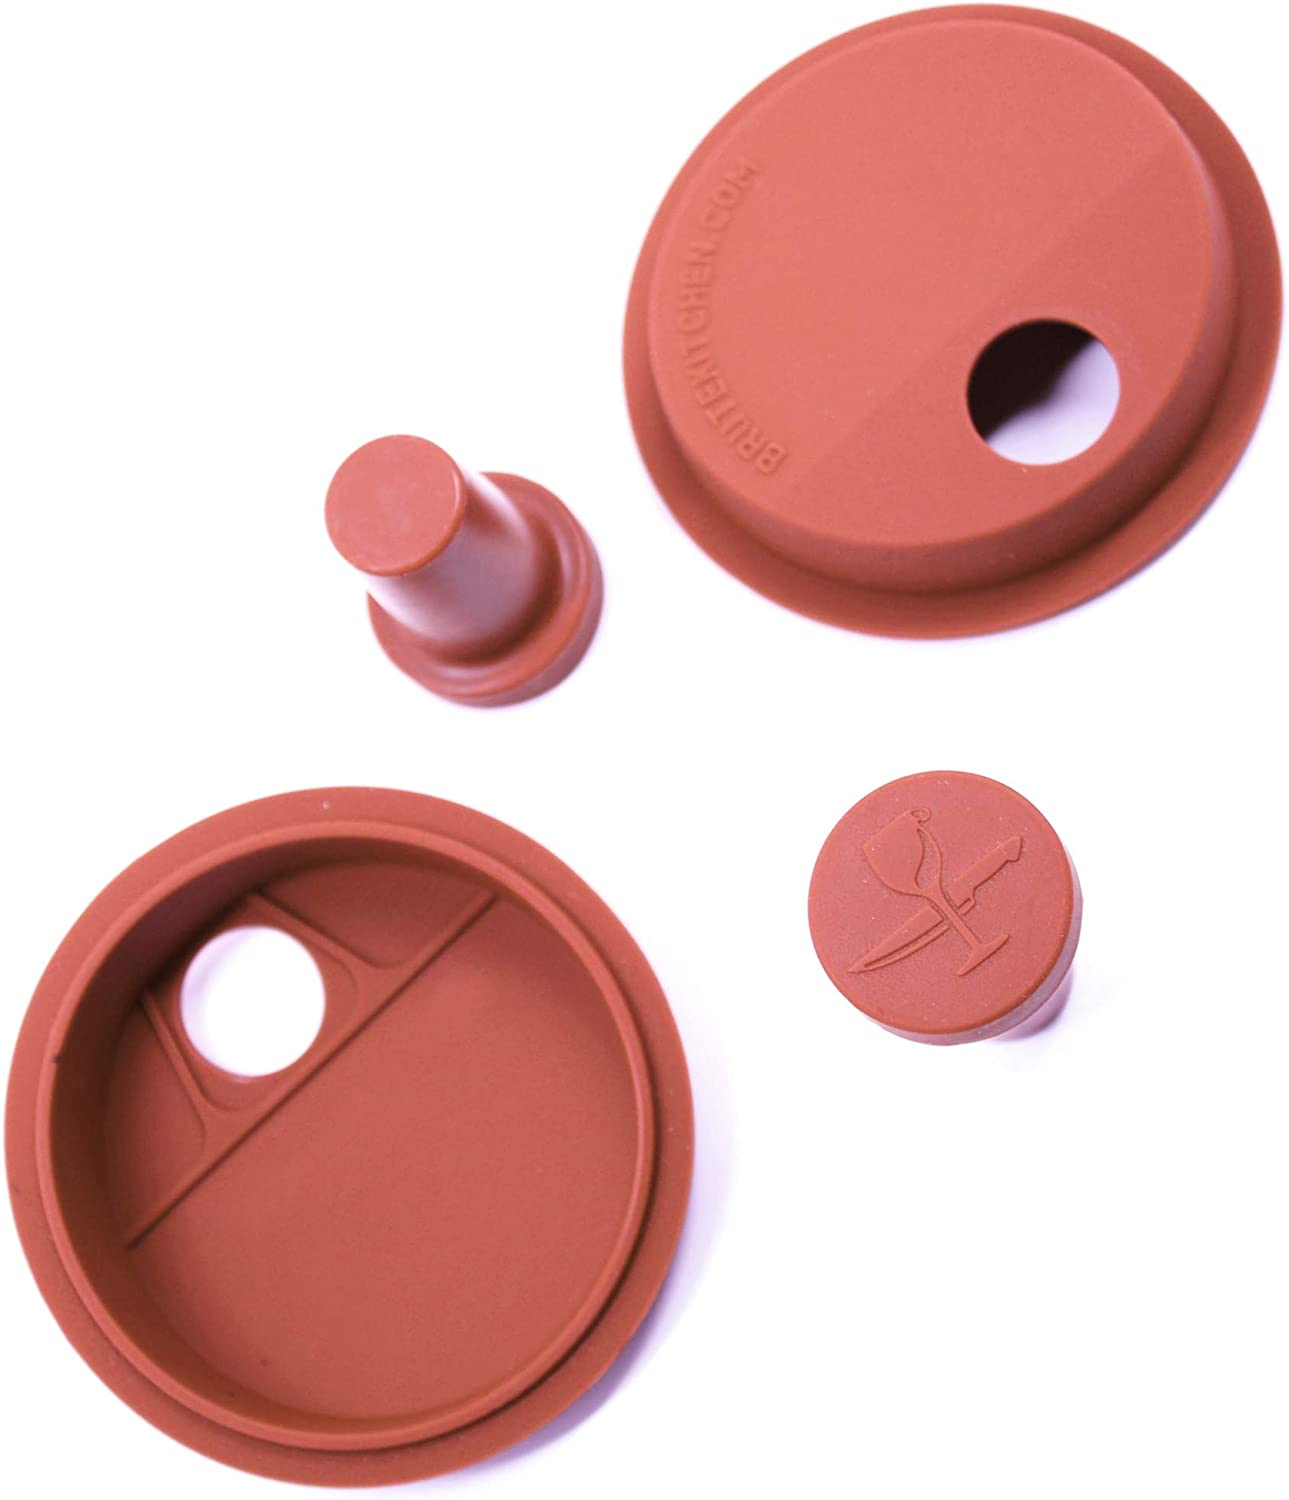 Wide-Mouth Mason Jar Silicone Corks Brand Cheap Super Special SALE held Sale Venue Lids 2 and